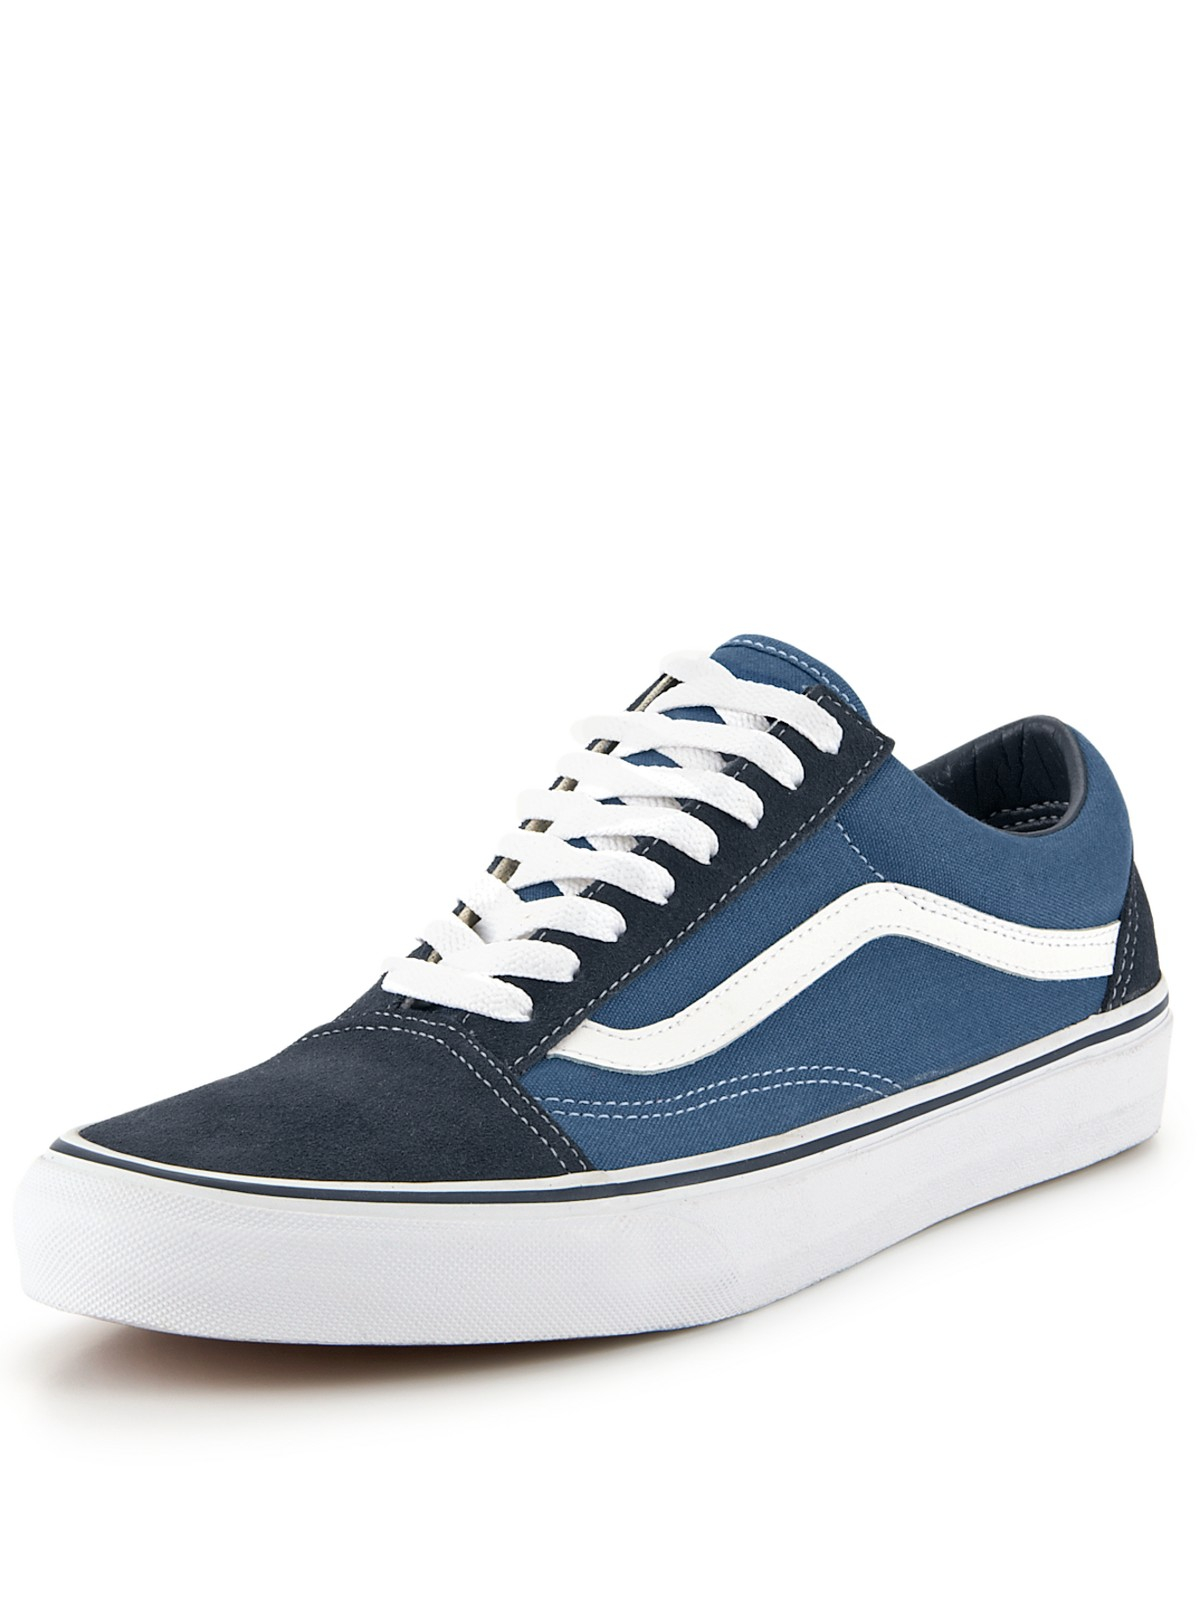 vans vans old skool mens plimsolls in blue for men navy. Black Bedroom Furniture Sets. Home Design Ideas